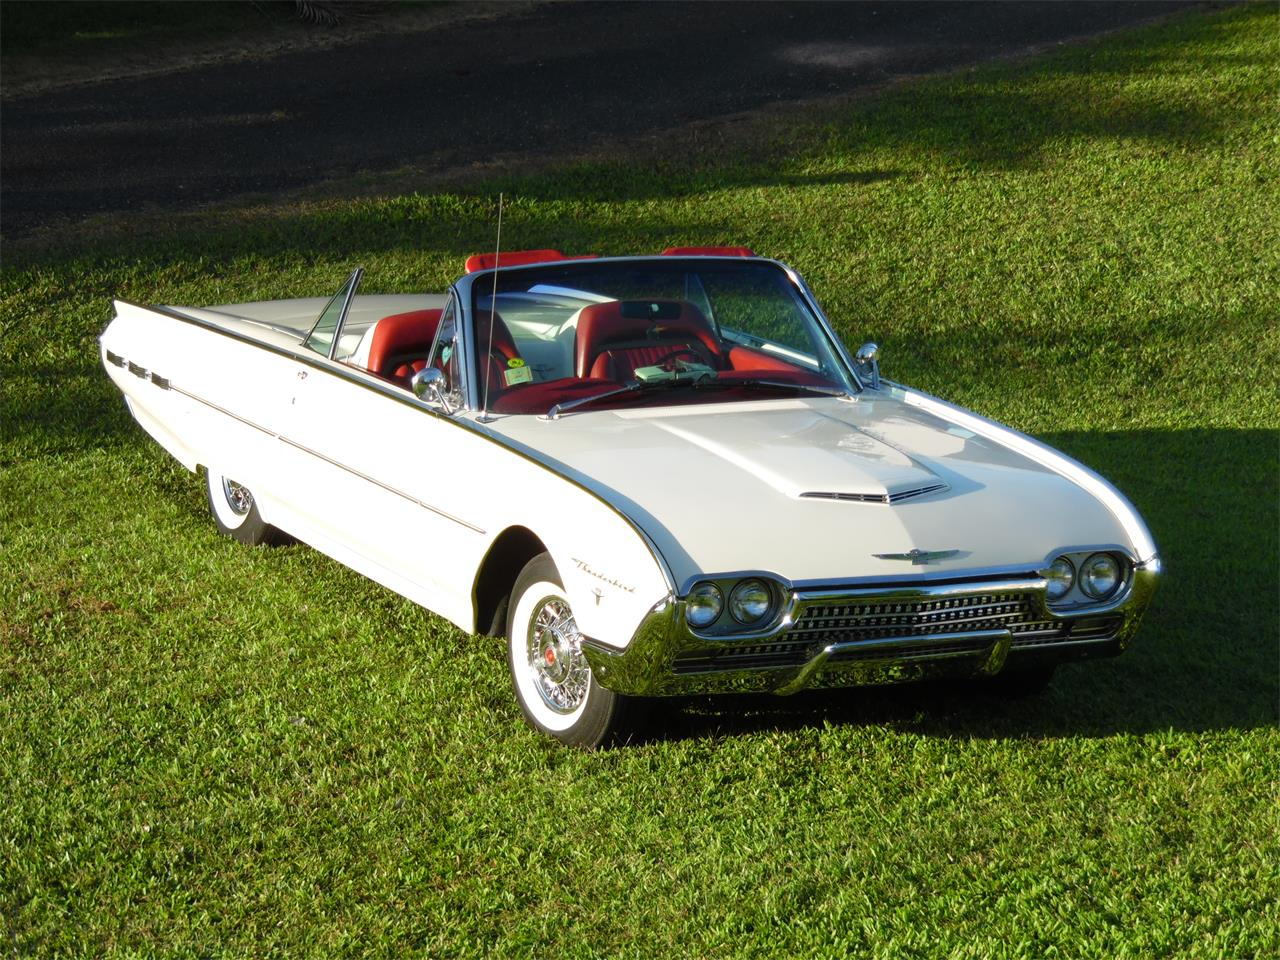 Large Picture of Classic '62 Thunderbird located in Moca Puerto Rico - $55,000.00 - MHQG